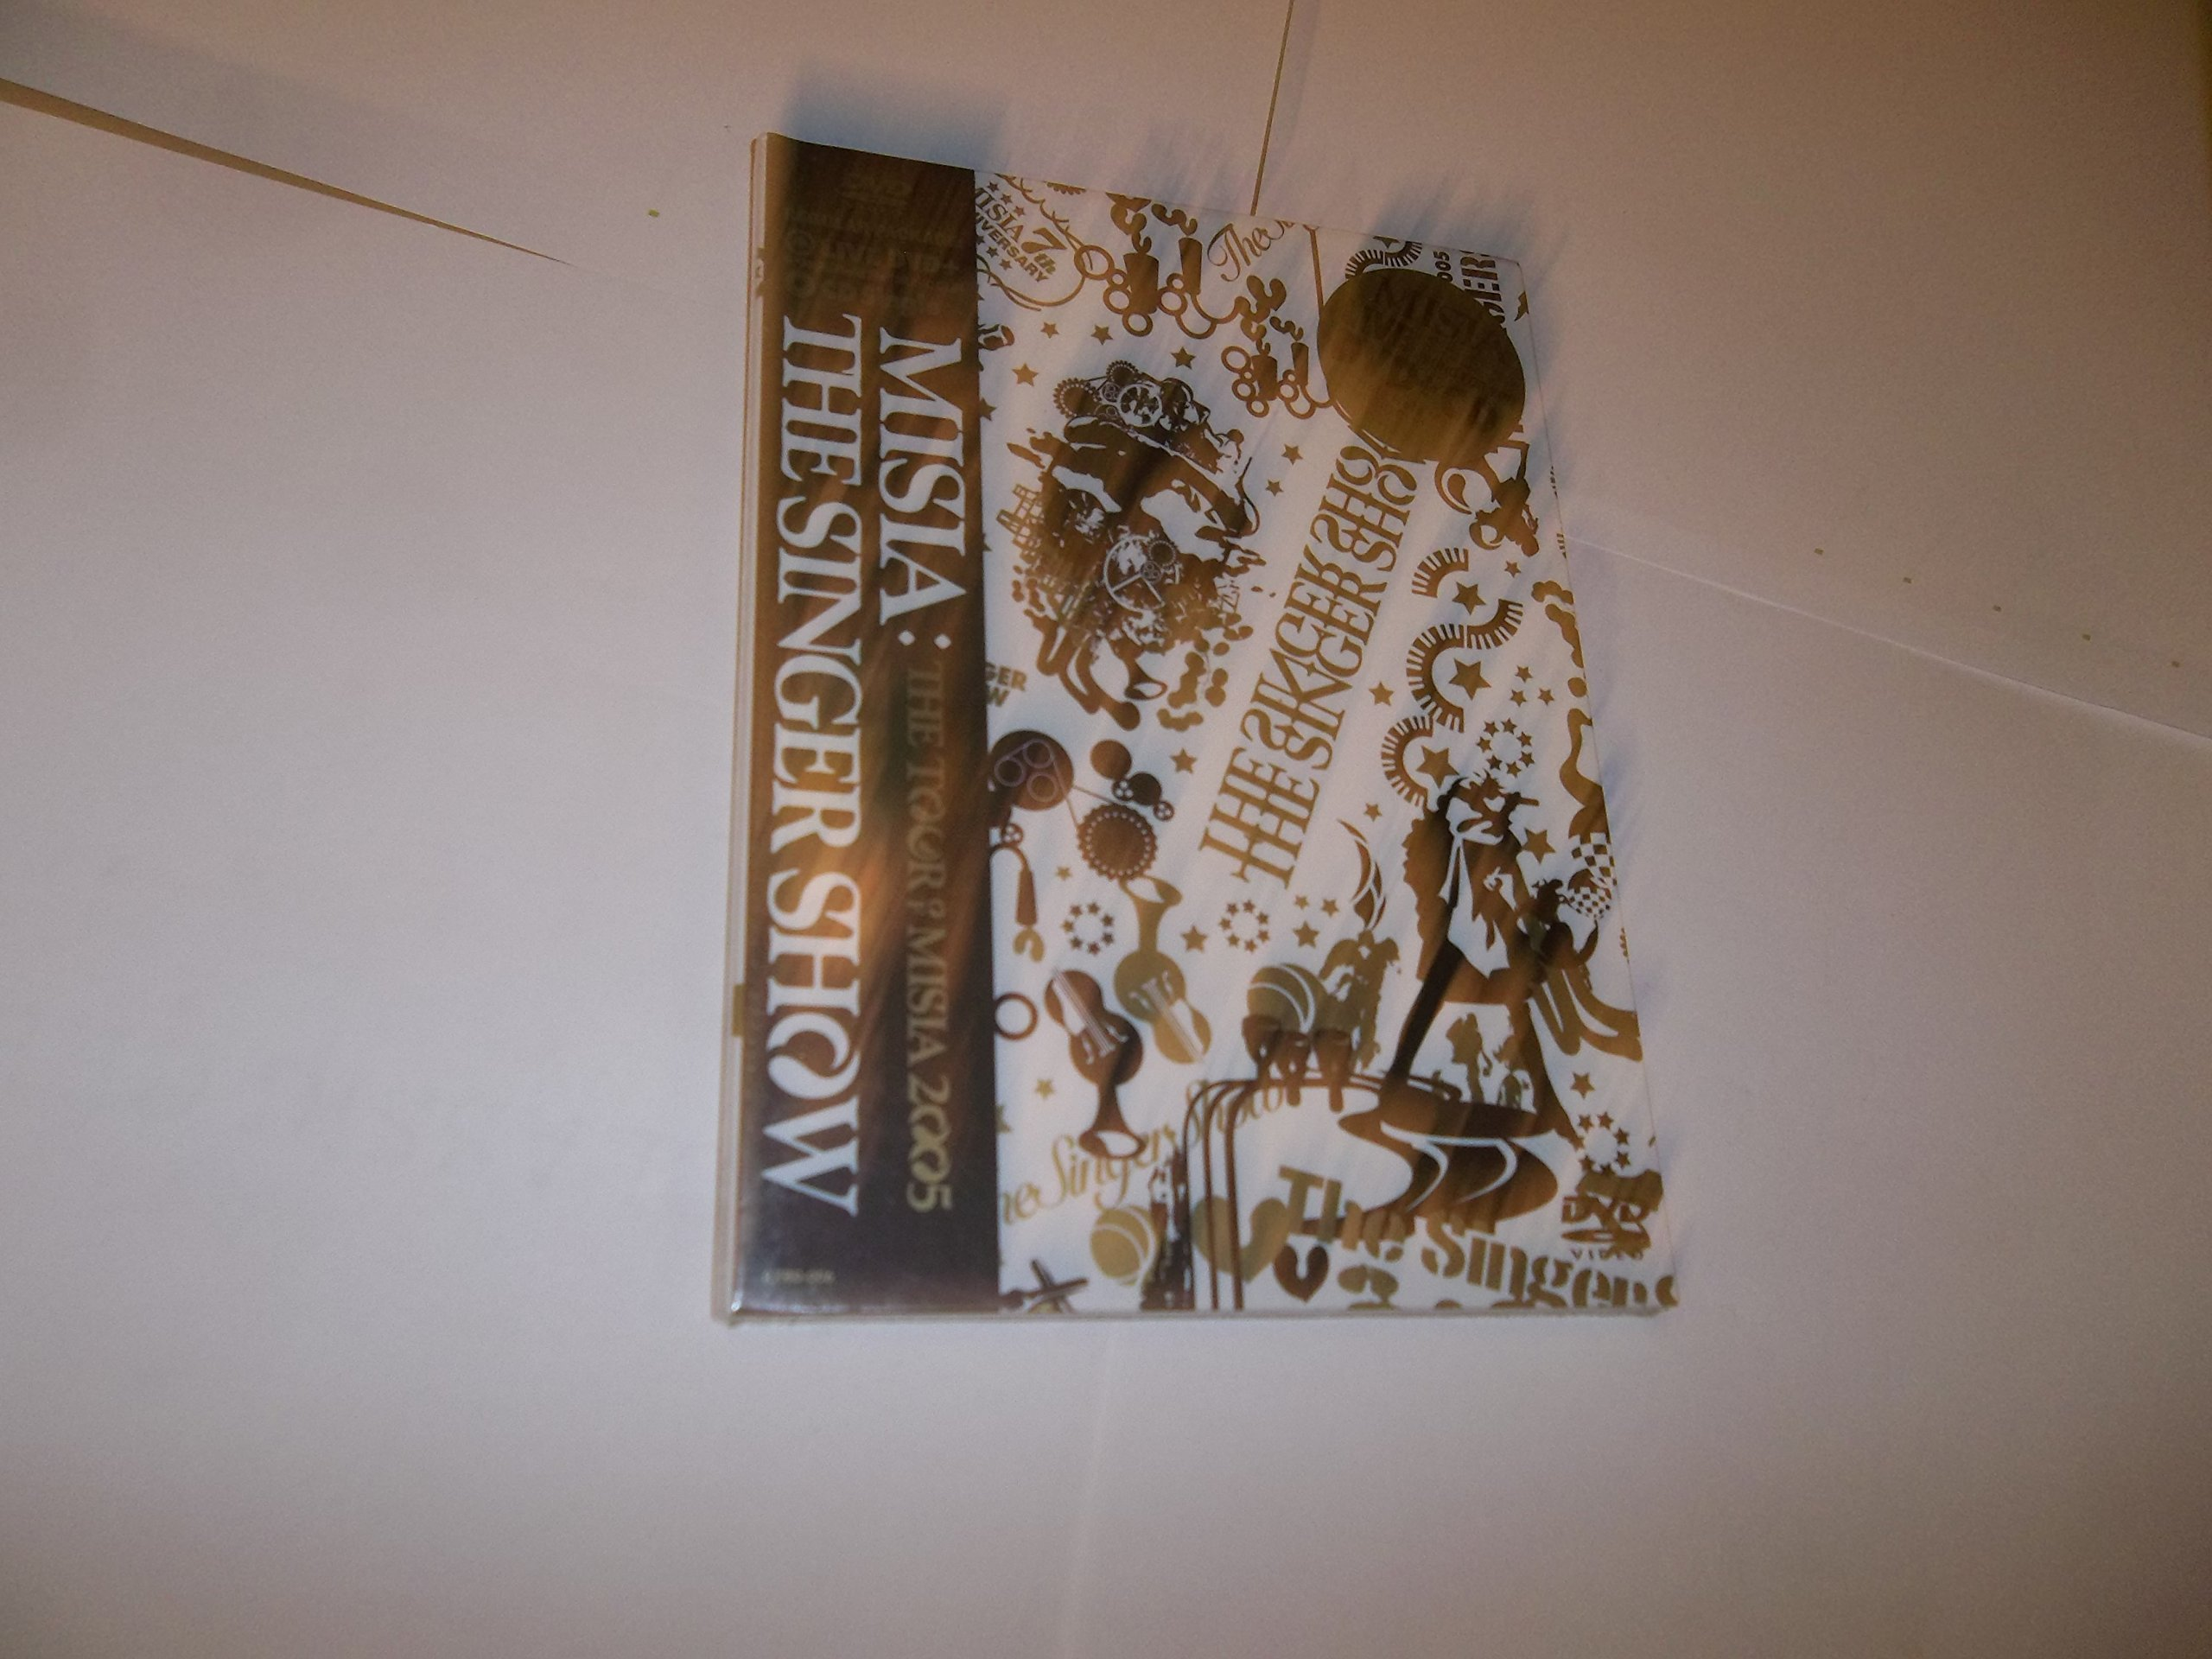 Live Tour Upturn 2005 DVD Format By Lead